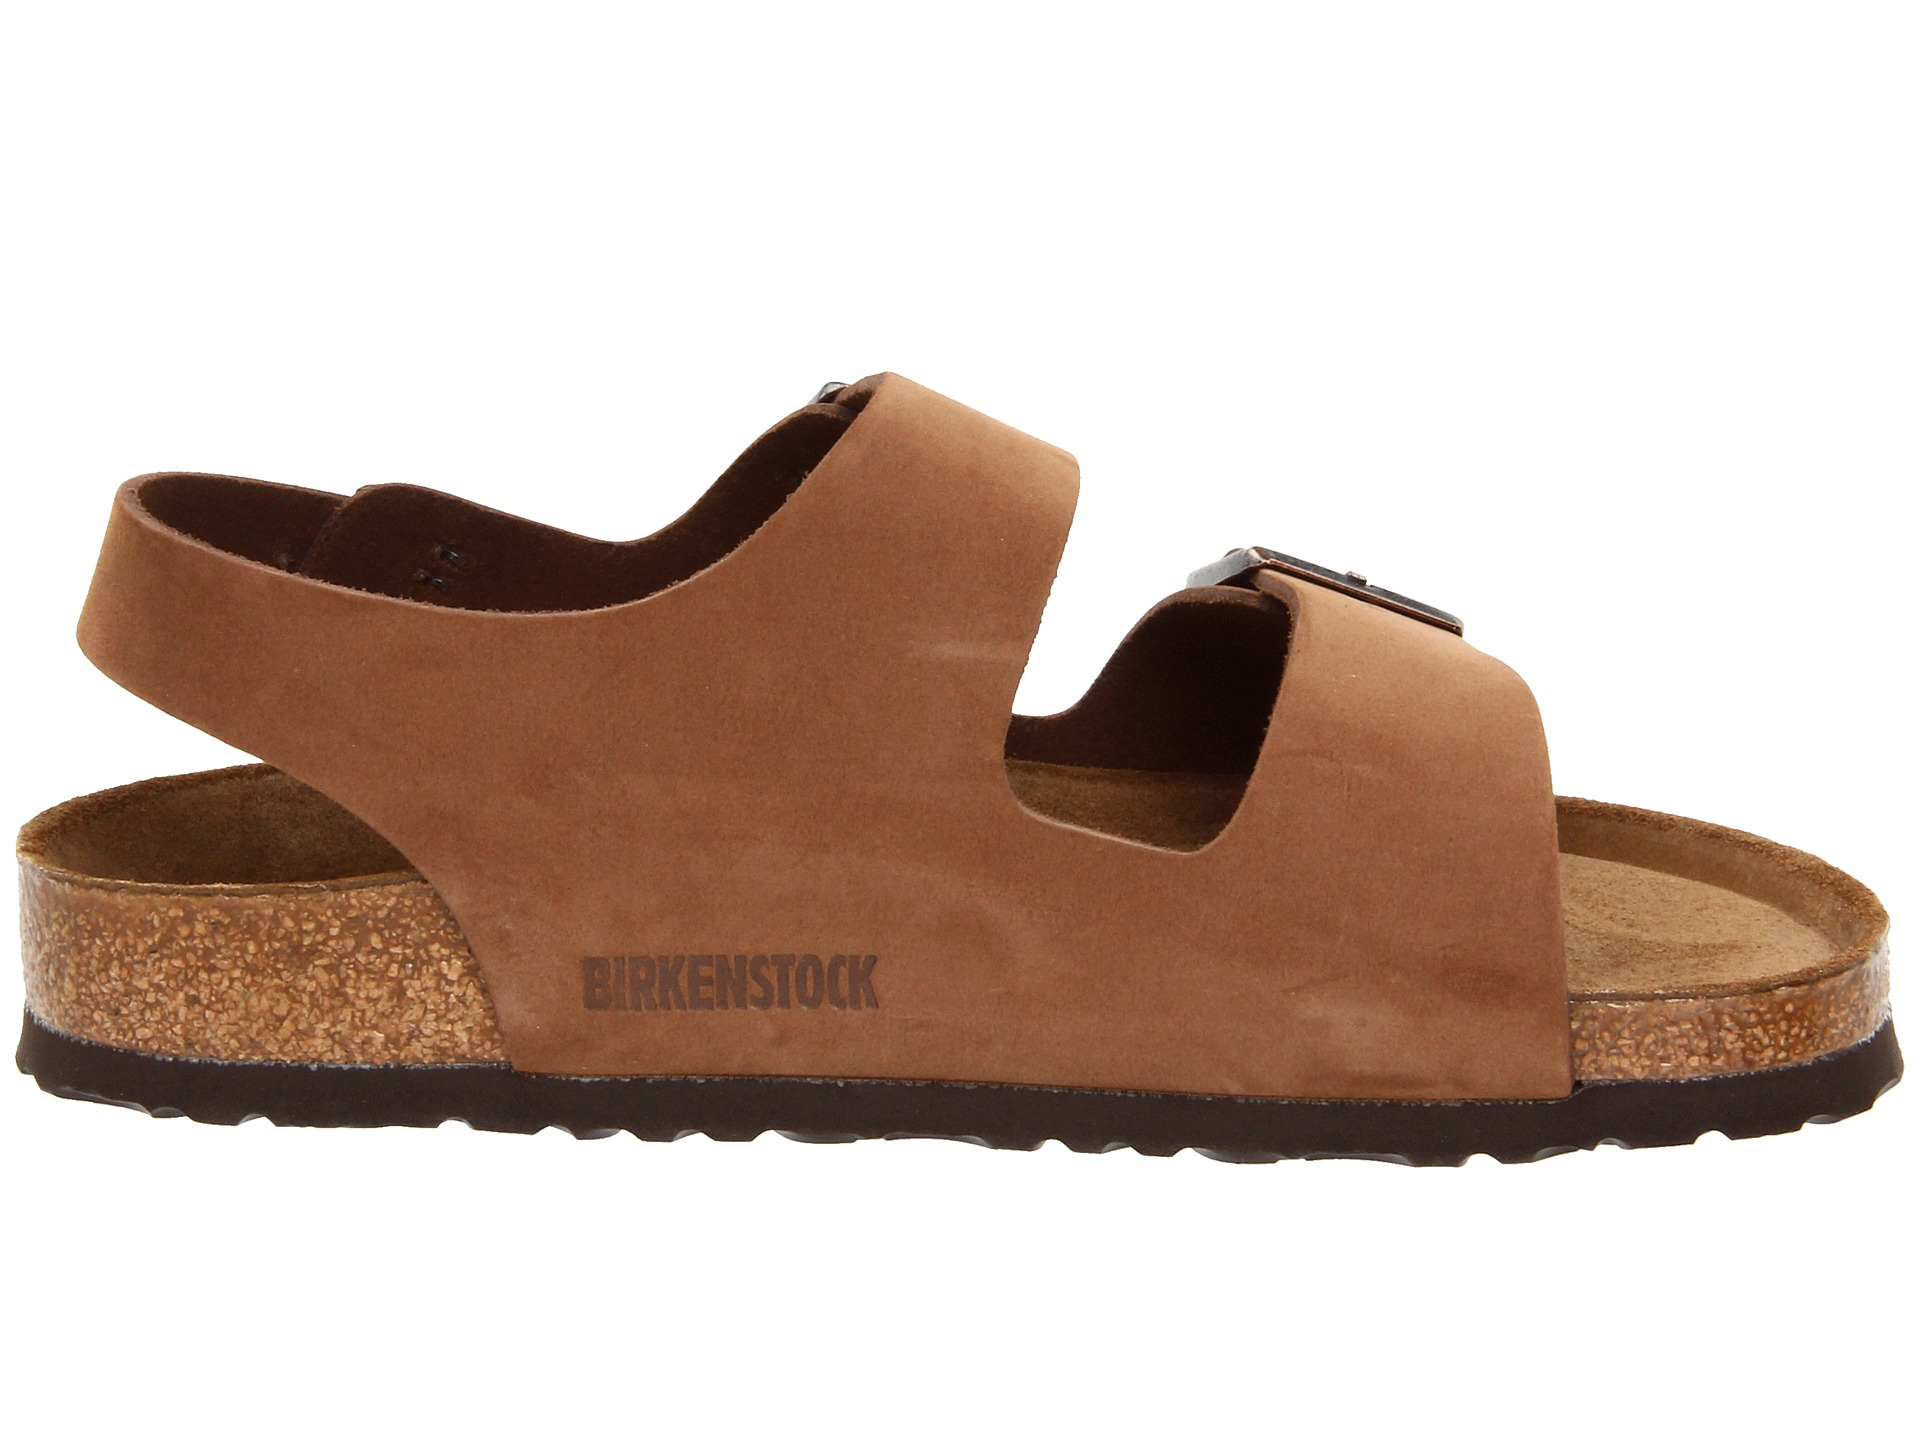 963461a080e Birkenstock Chania Name Flat Silver Sandals